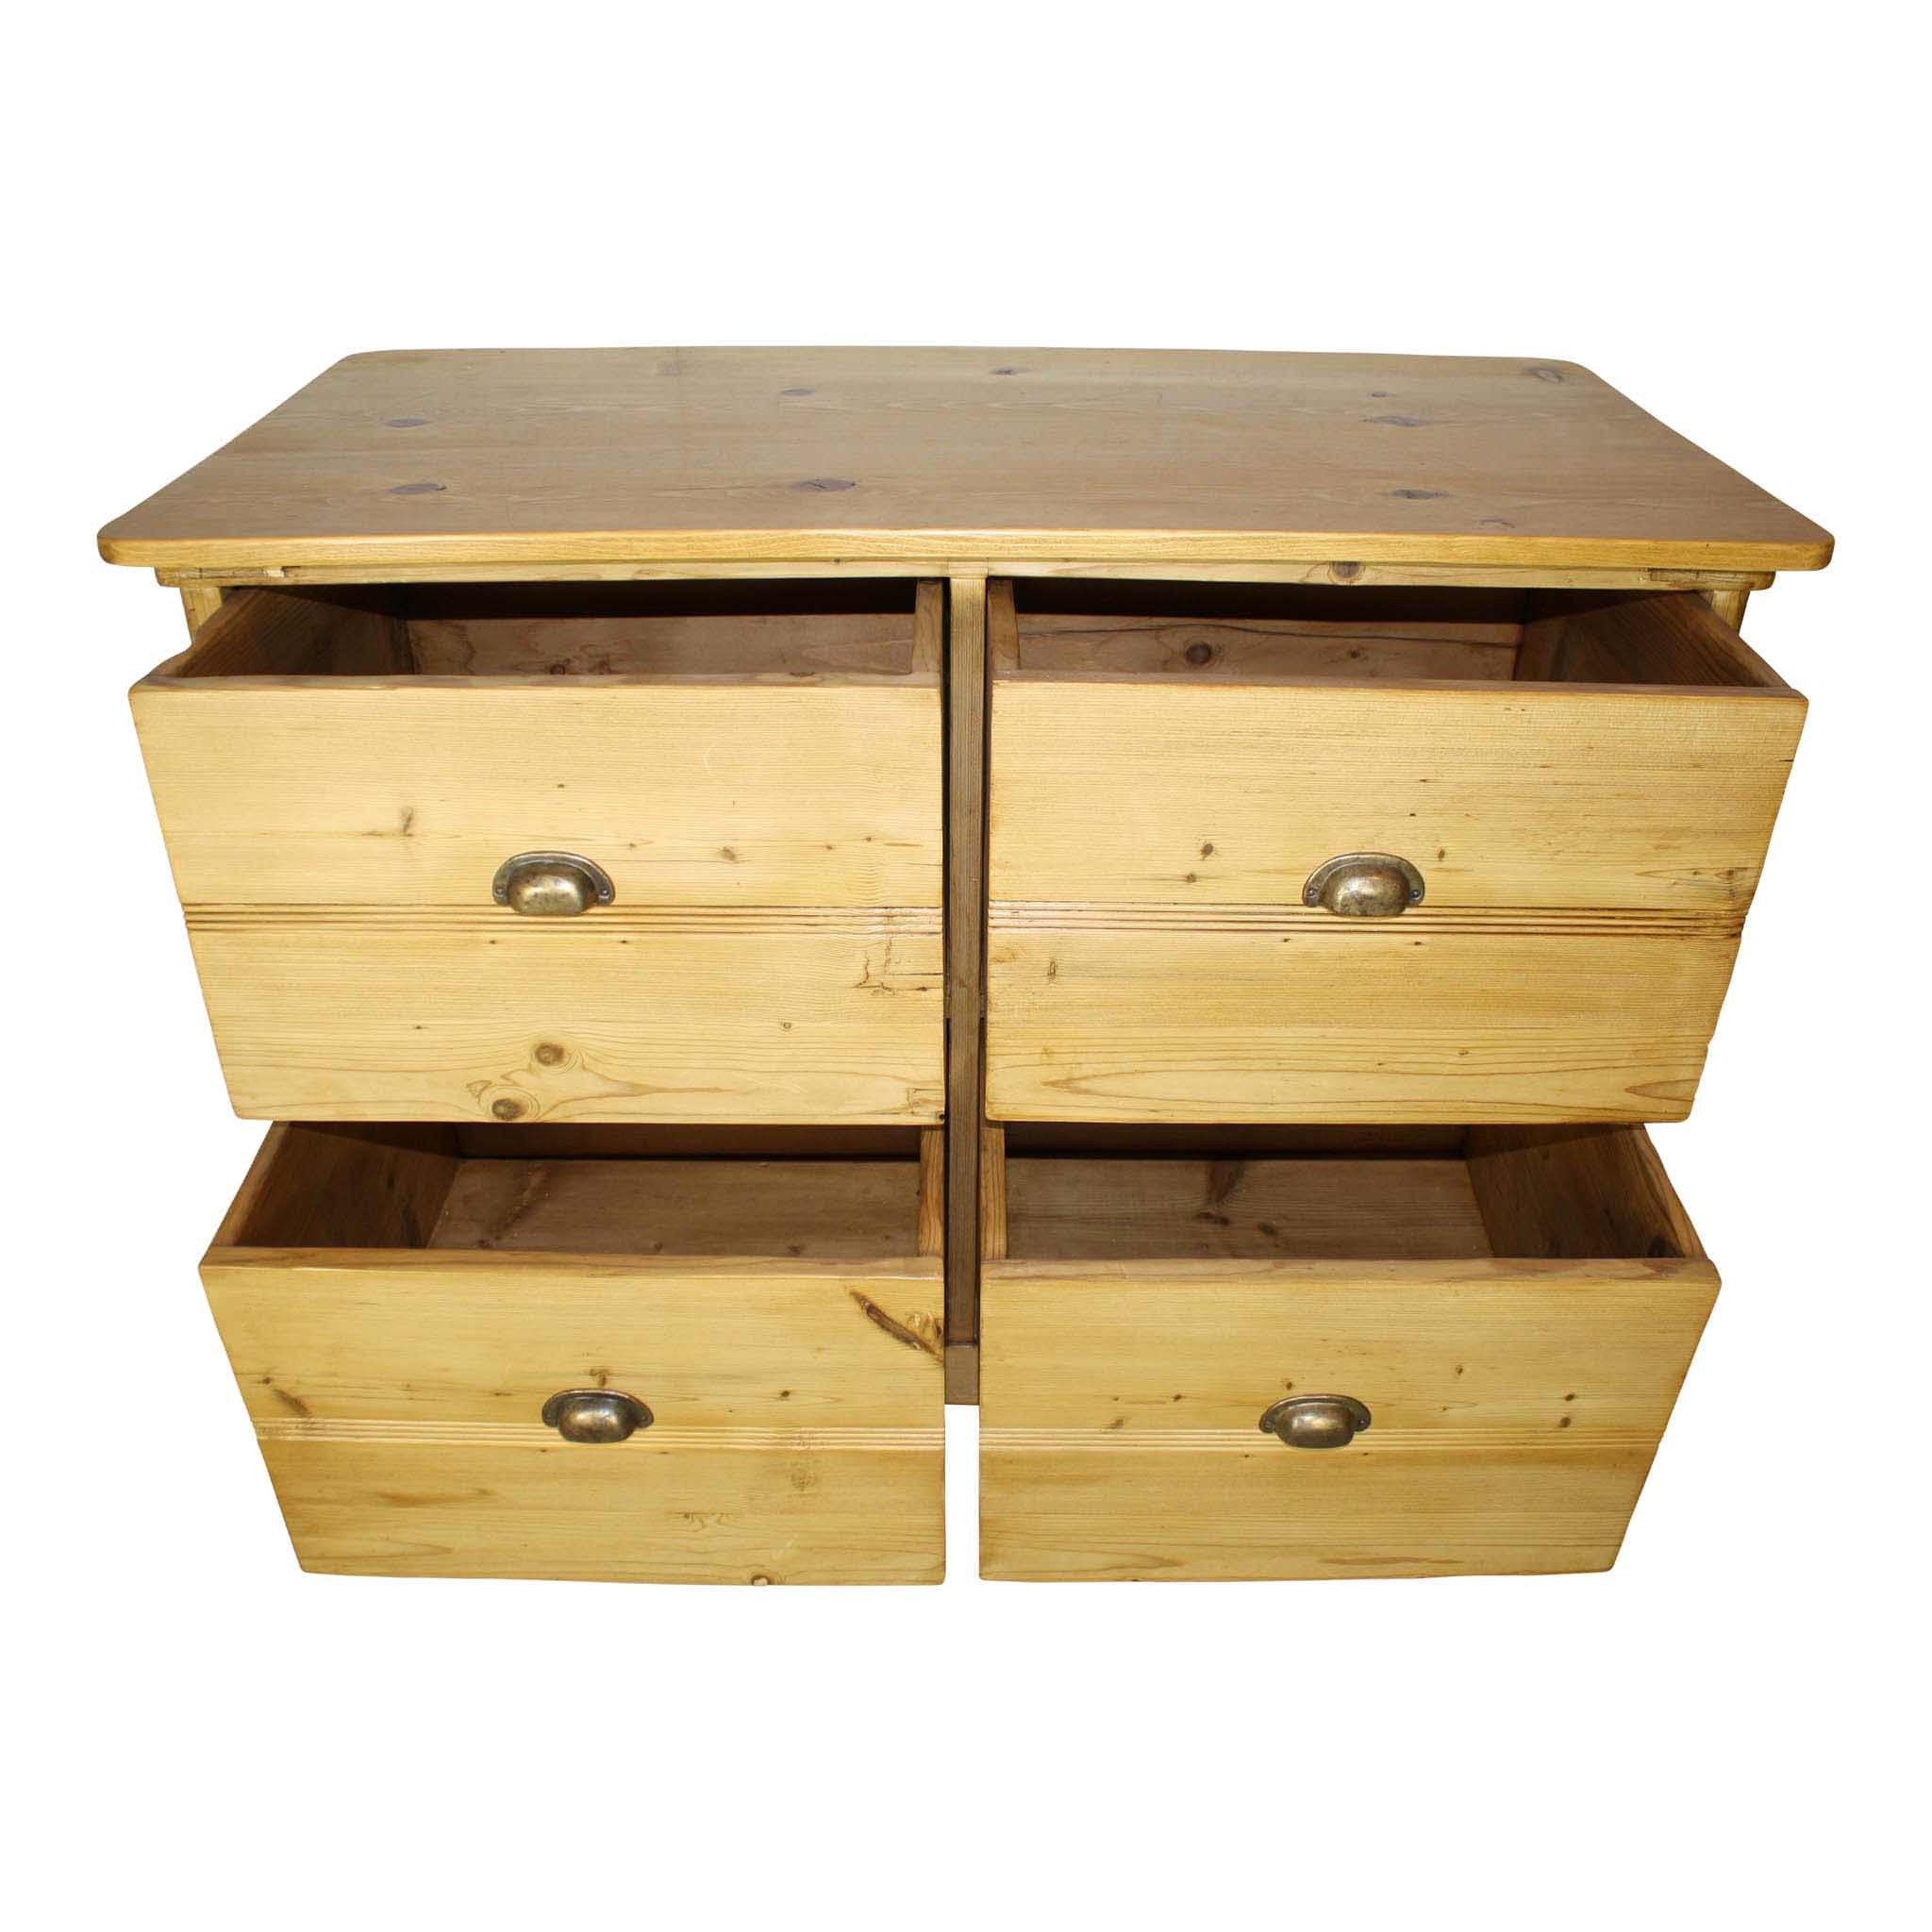 Pine Cabinet with Drawers